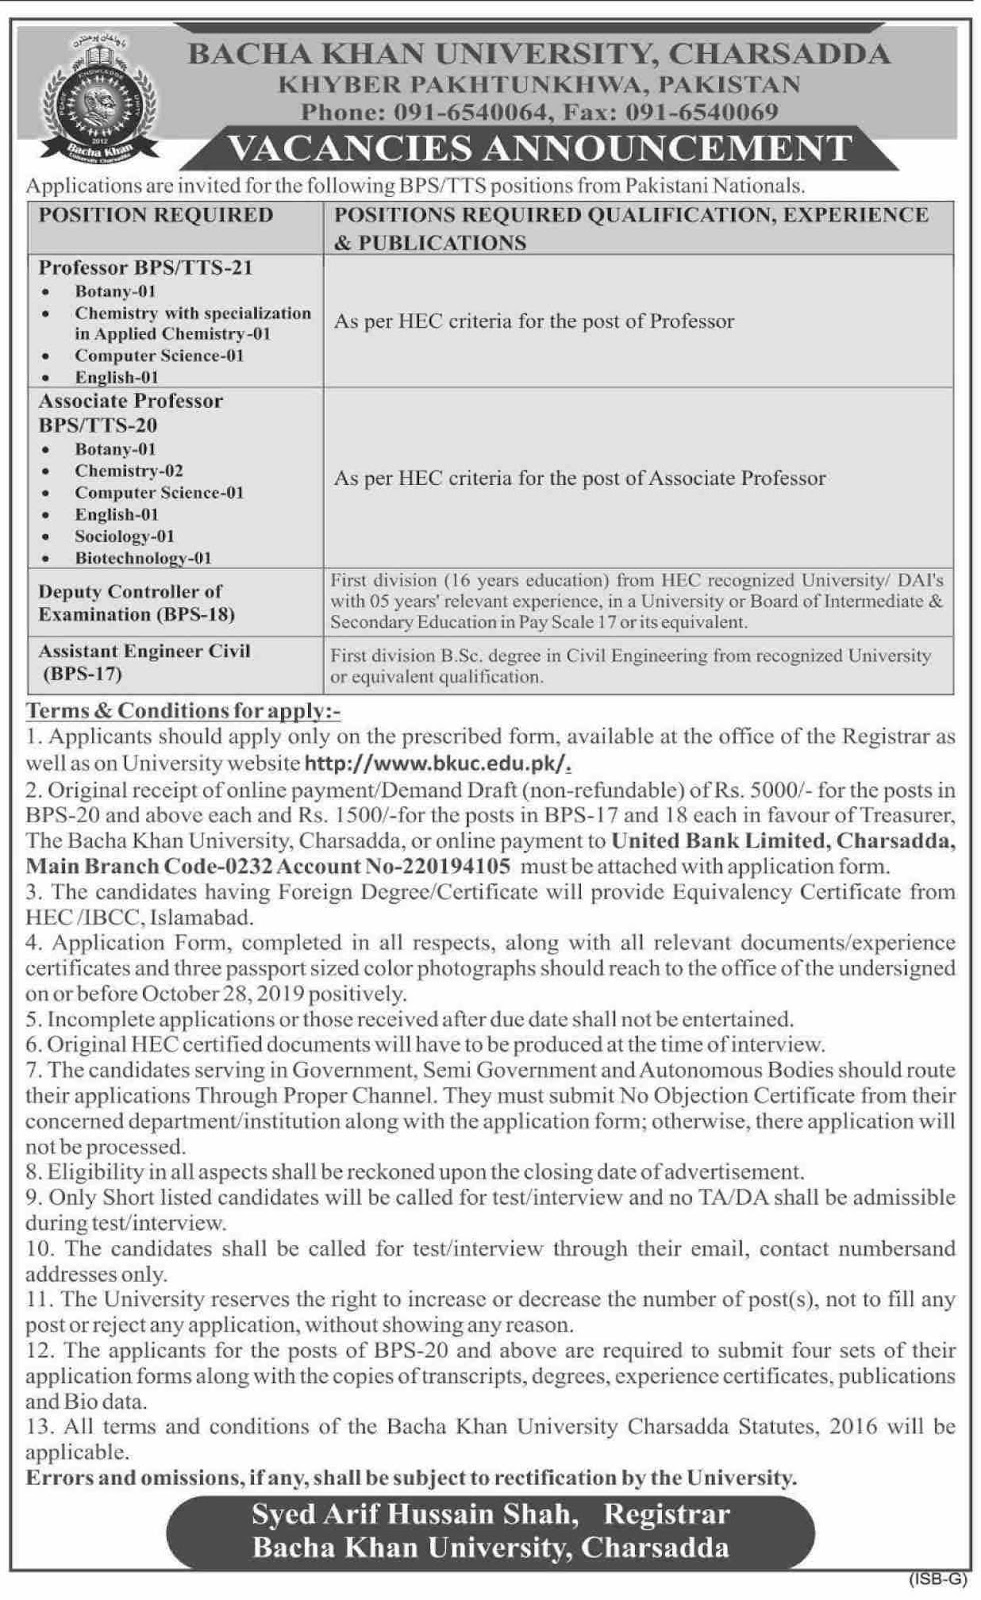 Jobs in Charsadda in Bacha Khan University 2019